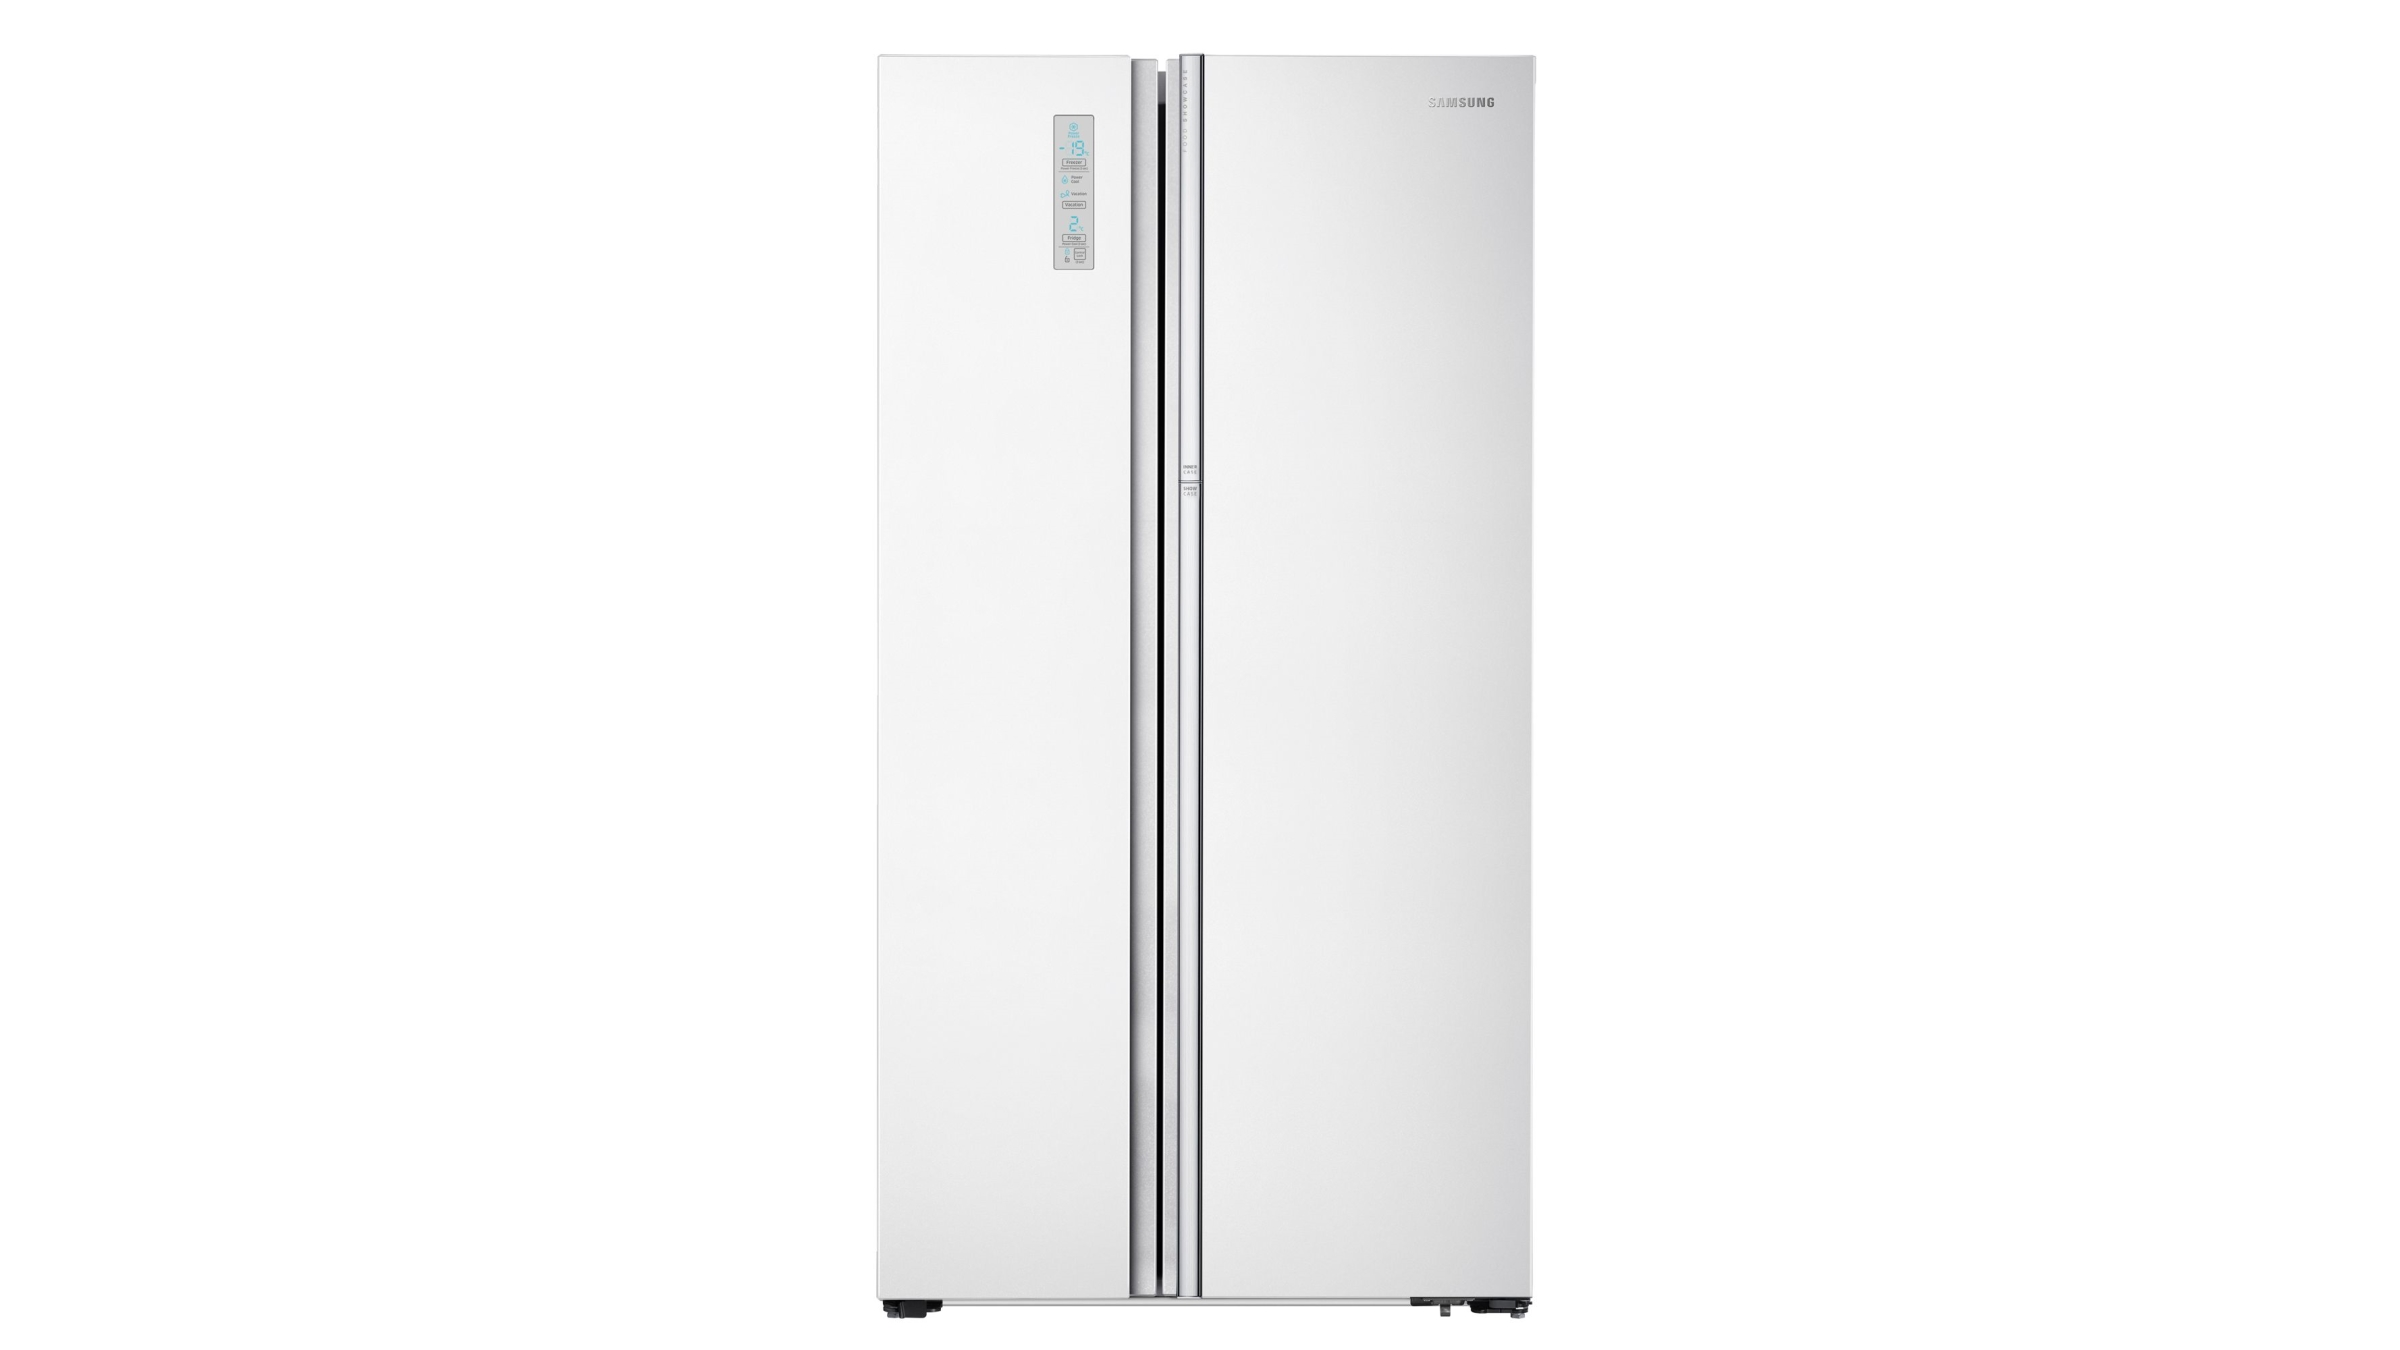 Kuche Top Mount Bar Fridge Refrigerator Fridge Mini Fridge Freezer Samsung Fridge